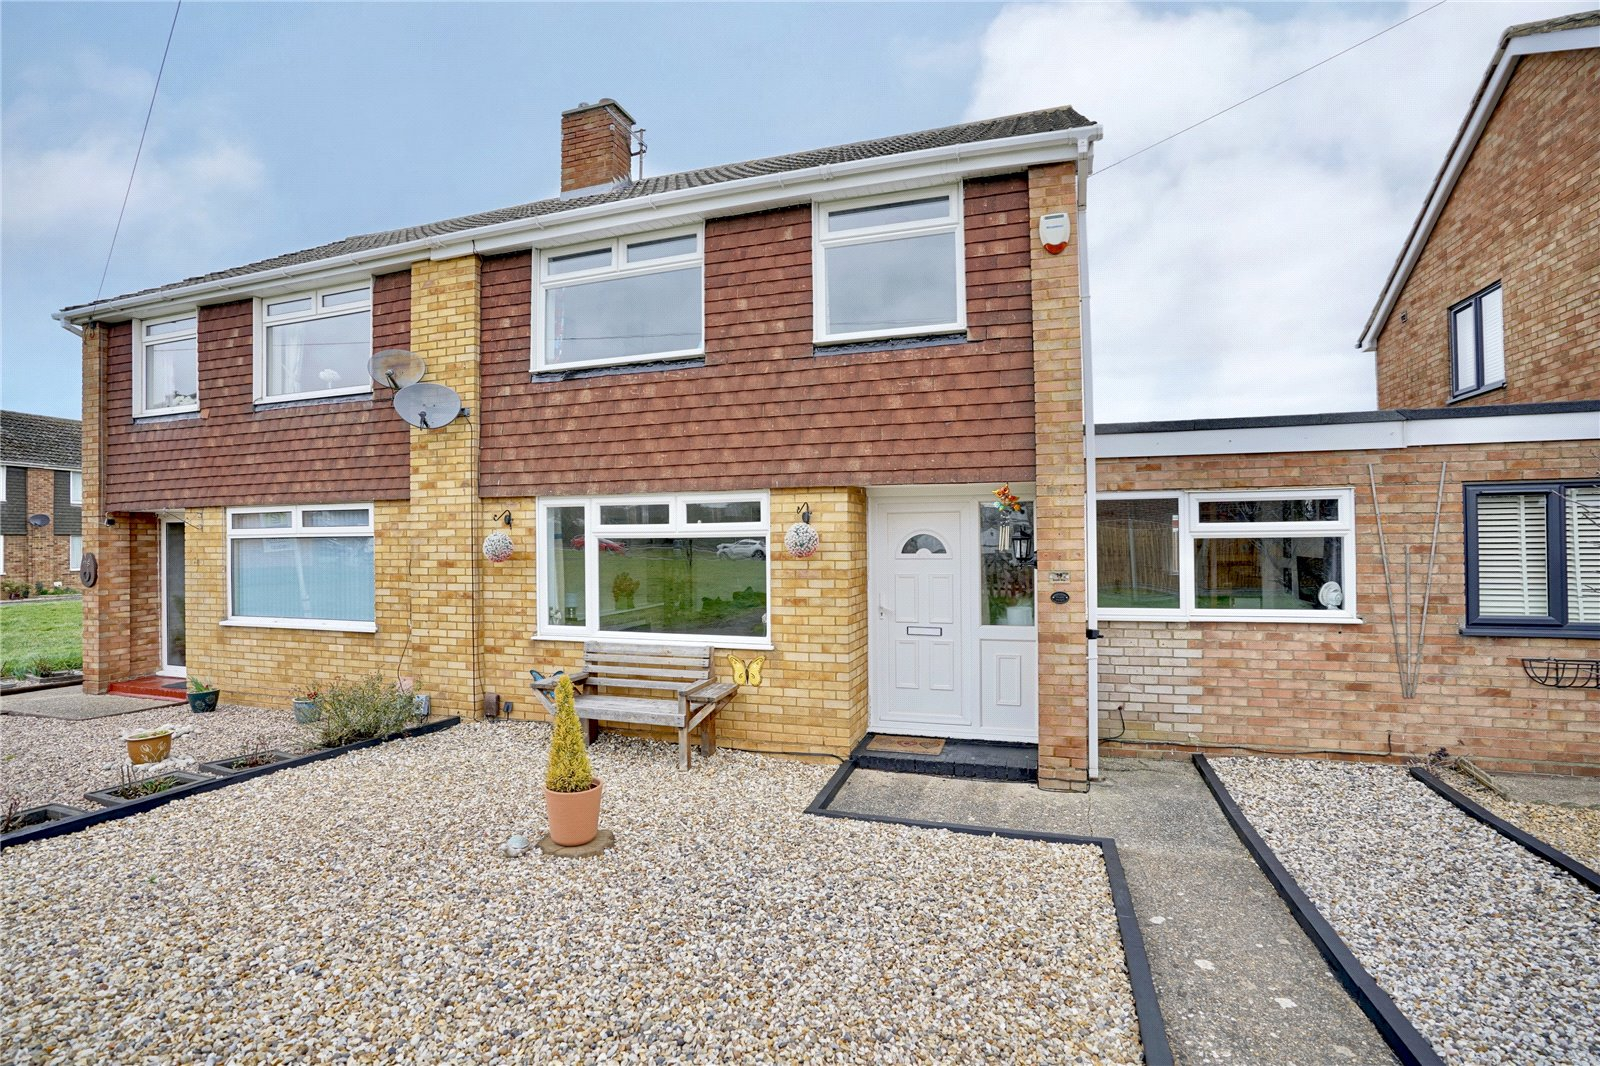 3 bed house for sale in Little Paxton, PE19 6JR, PE19